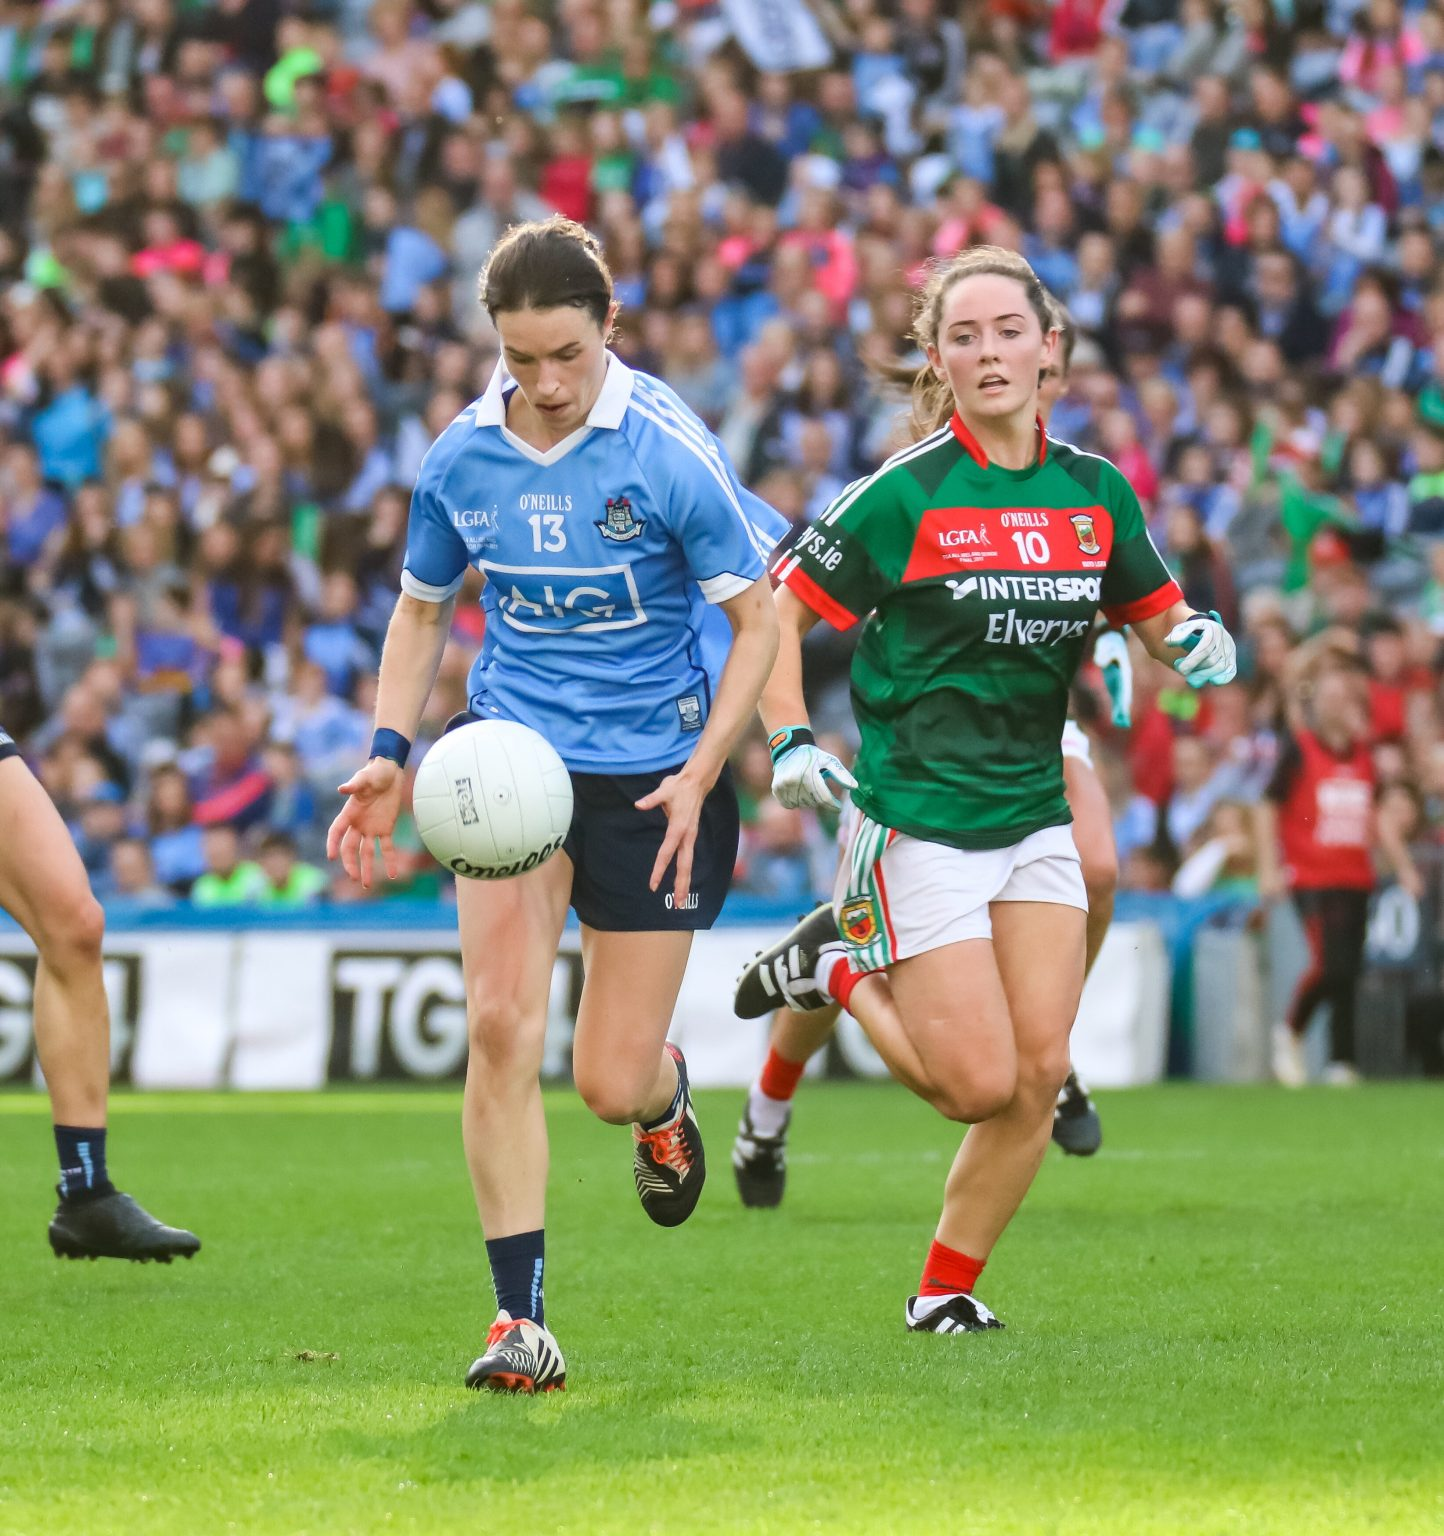 Dublin LGFA Urge Fans To Arrive Early And Support The Ladies Senior Football Team Against Mayo